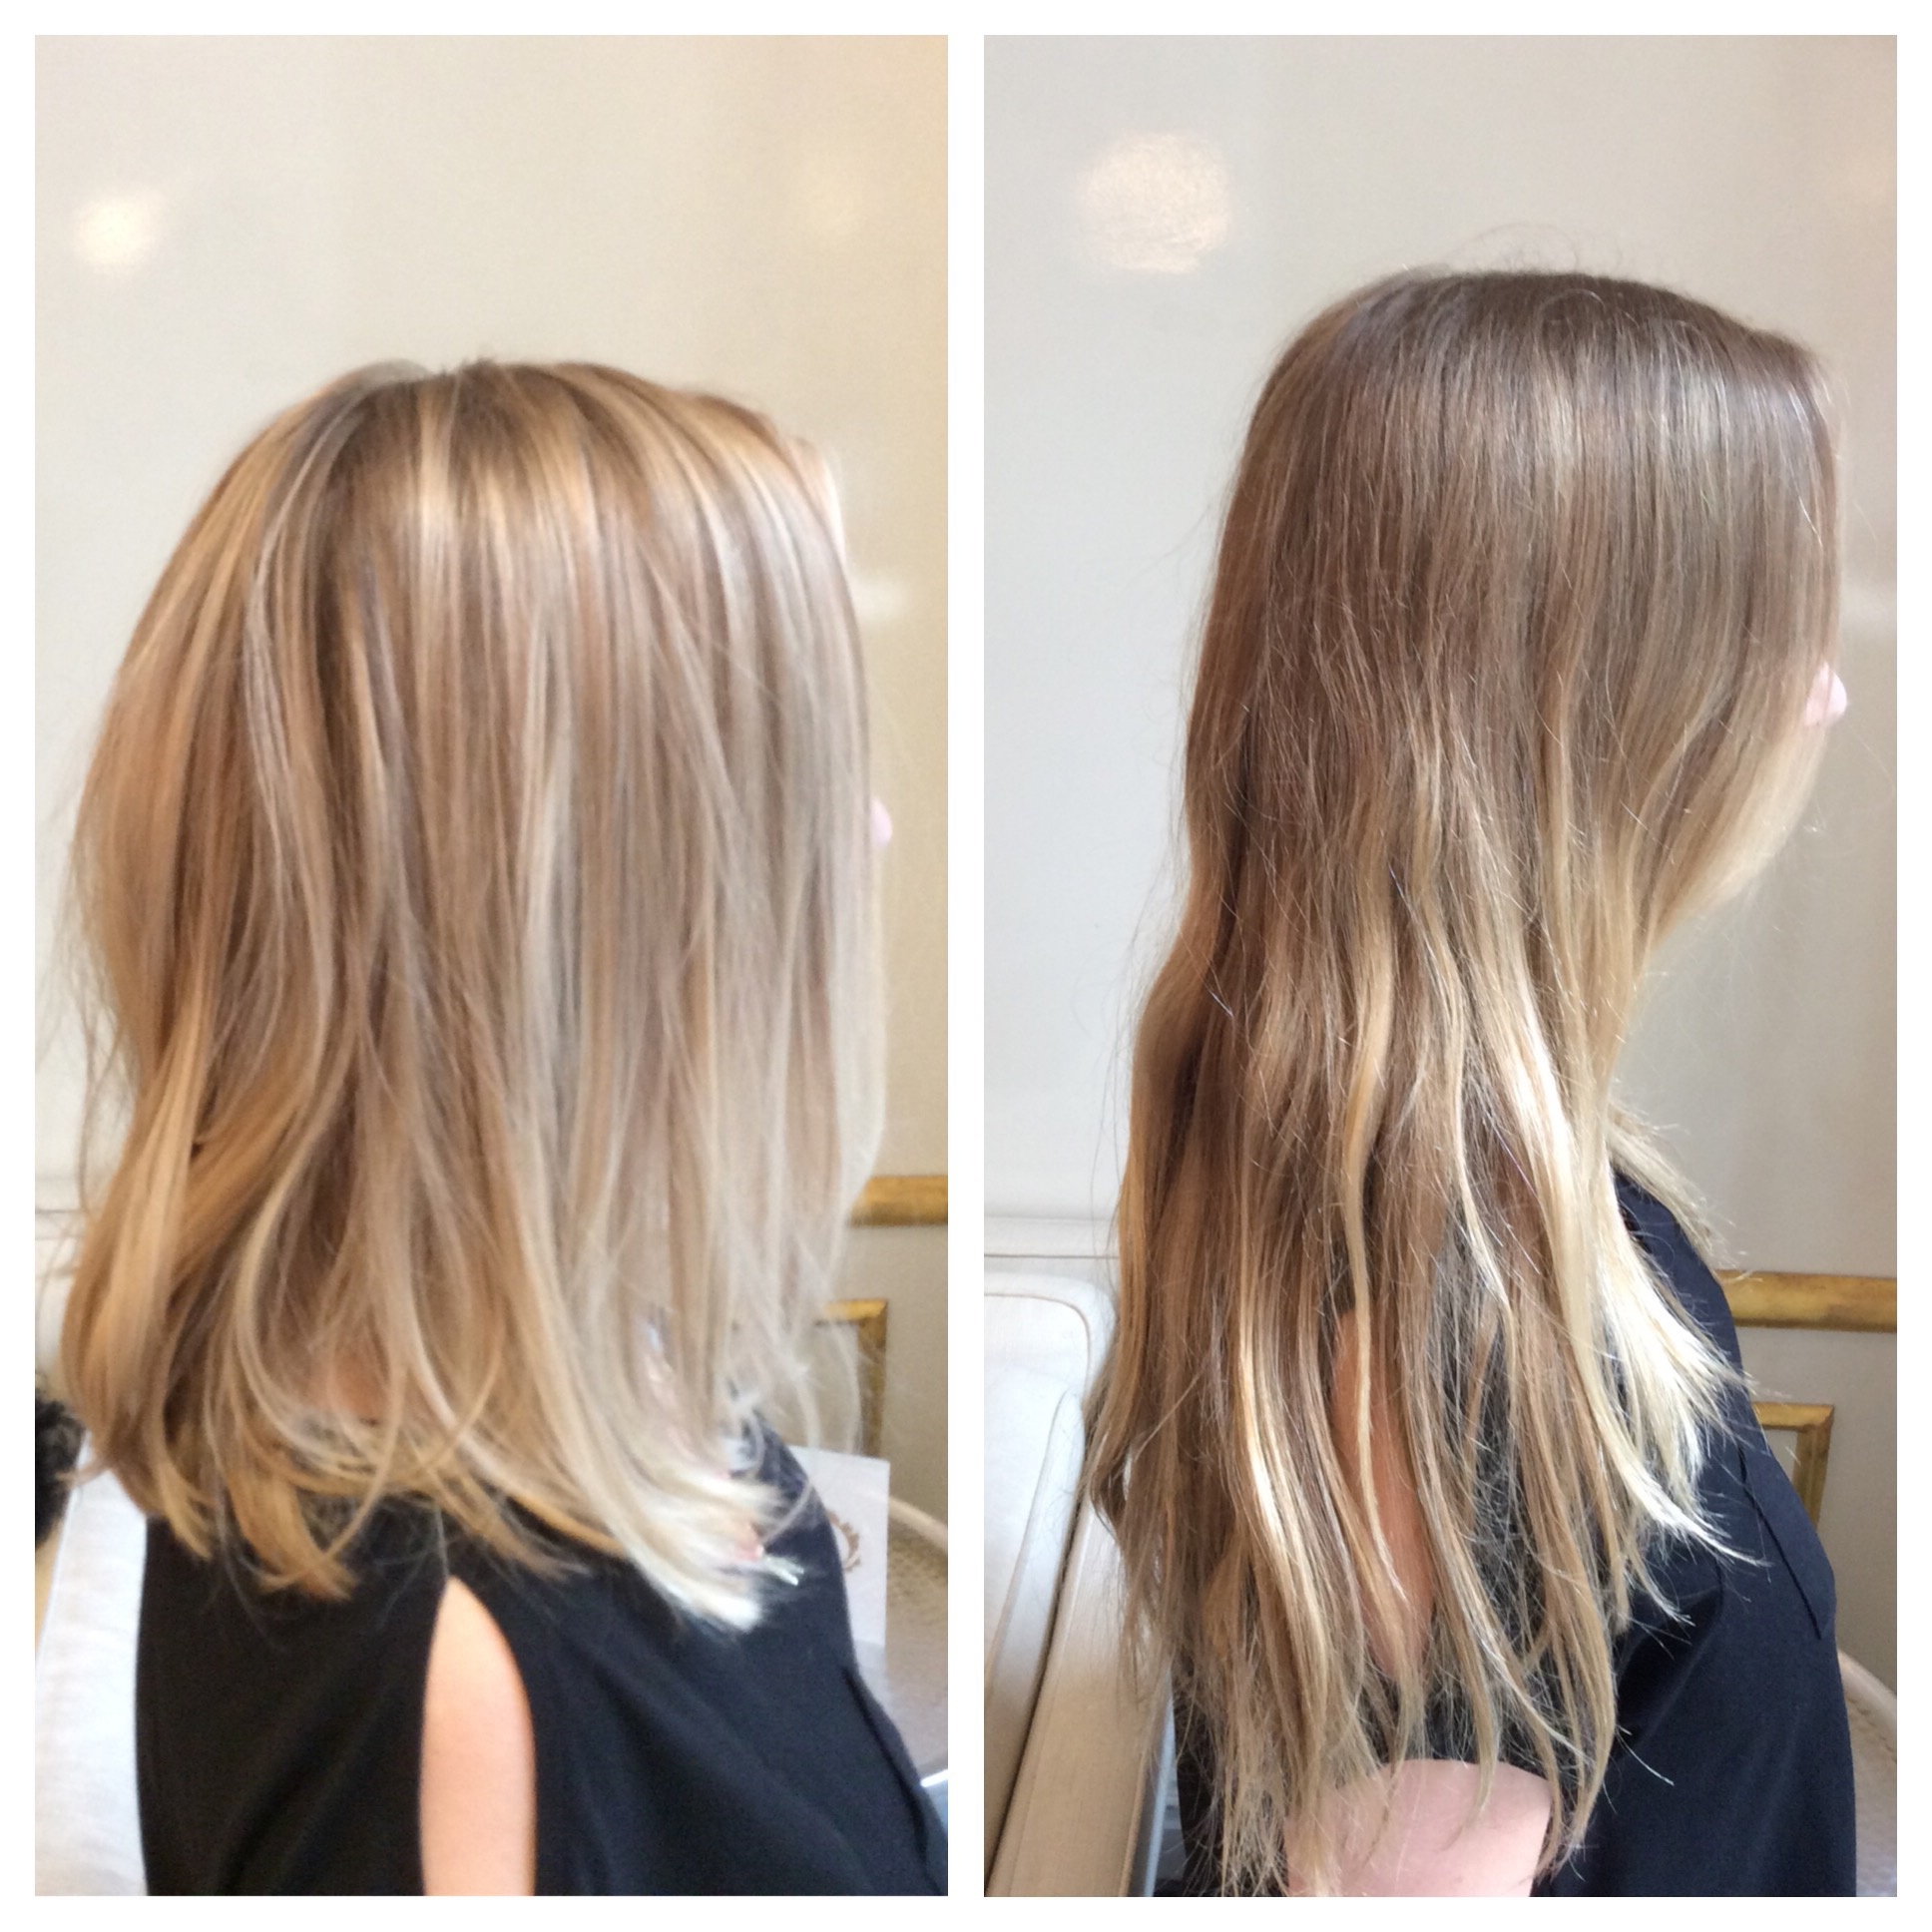 Lots Of Baby Blonde Balayage & Long Bob | Elle Kinney Intended For Balayage Highlights For Long Bob Hairstyles (View 9 of 20)